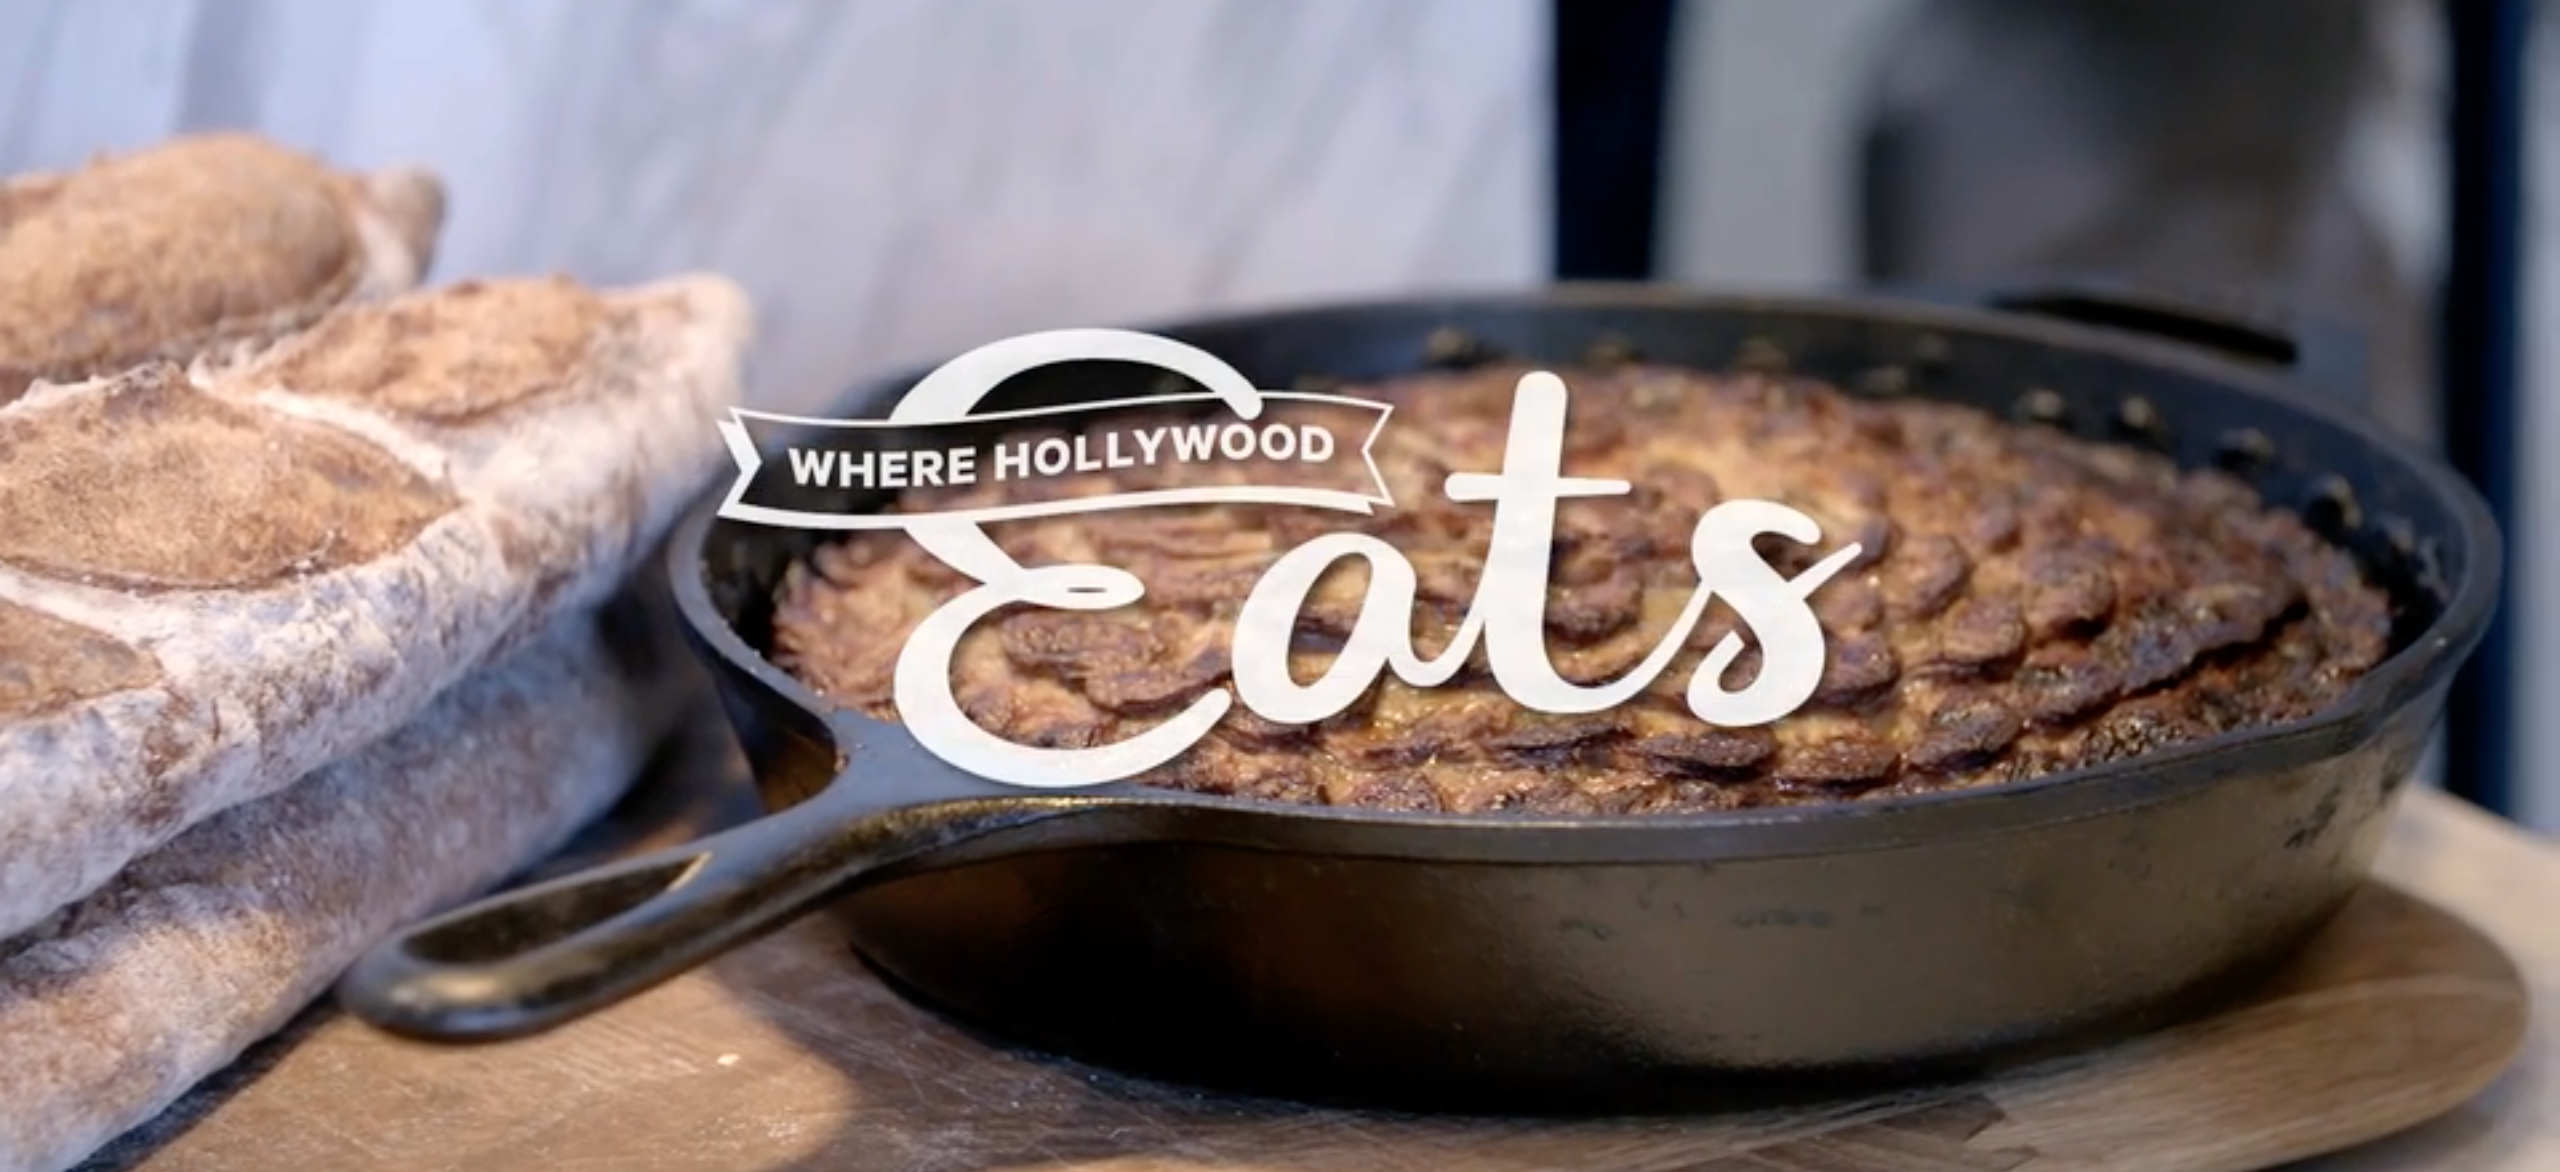 Where Hollywood Eats